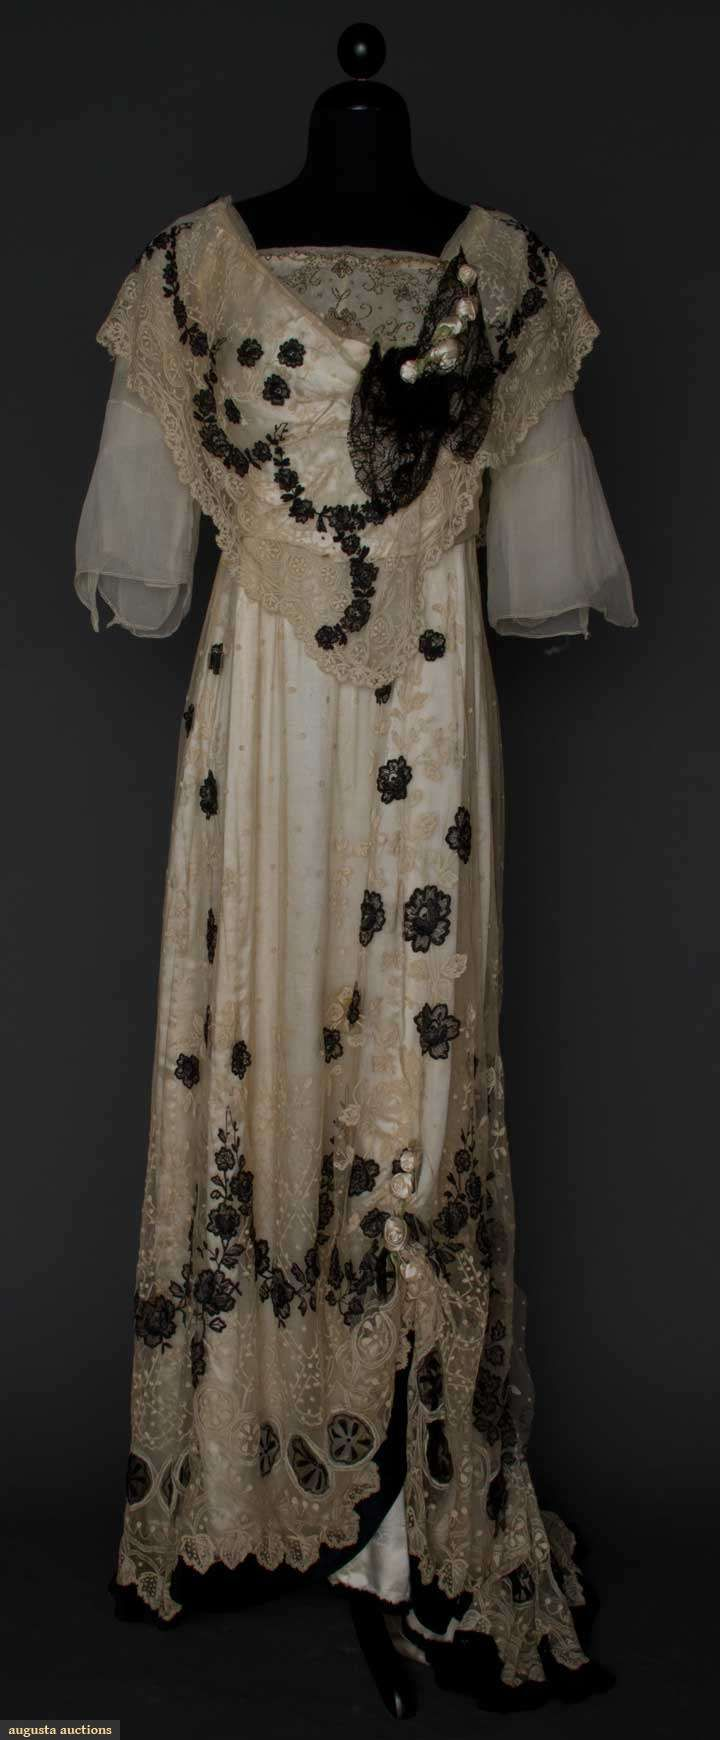 White silk satin evening dress with tambour-embroidered net overlay, black lace appliqué, and white silk ribbon rose-bud decoration, c. 1912.